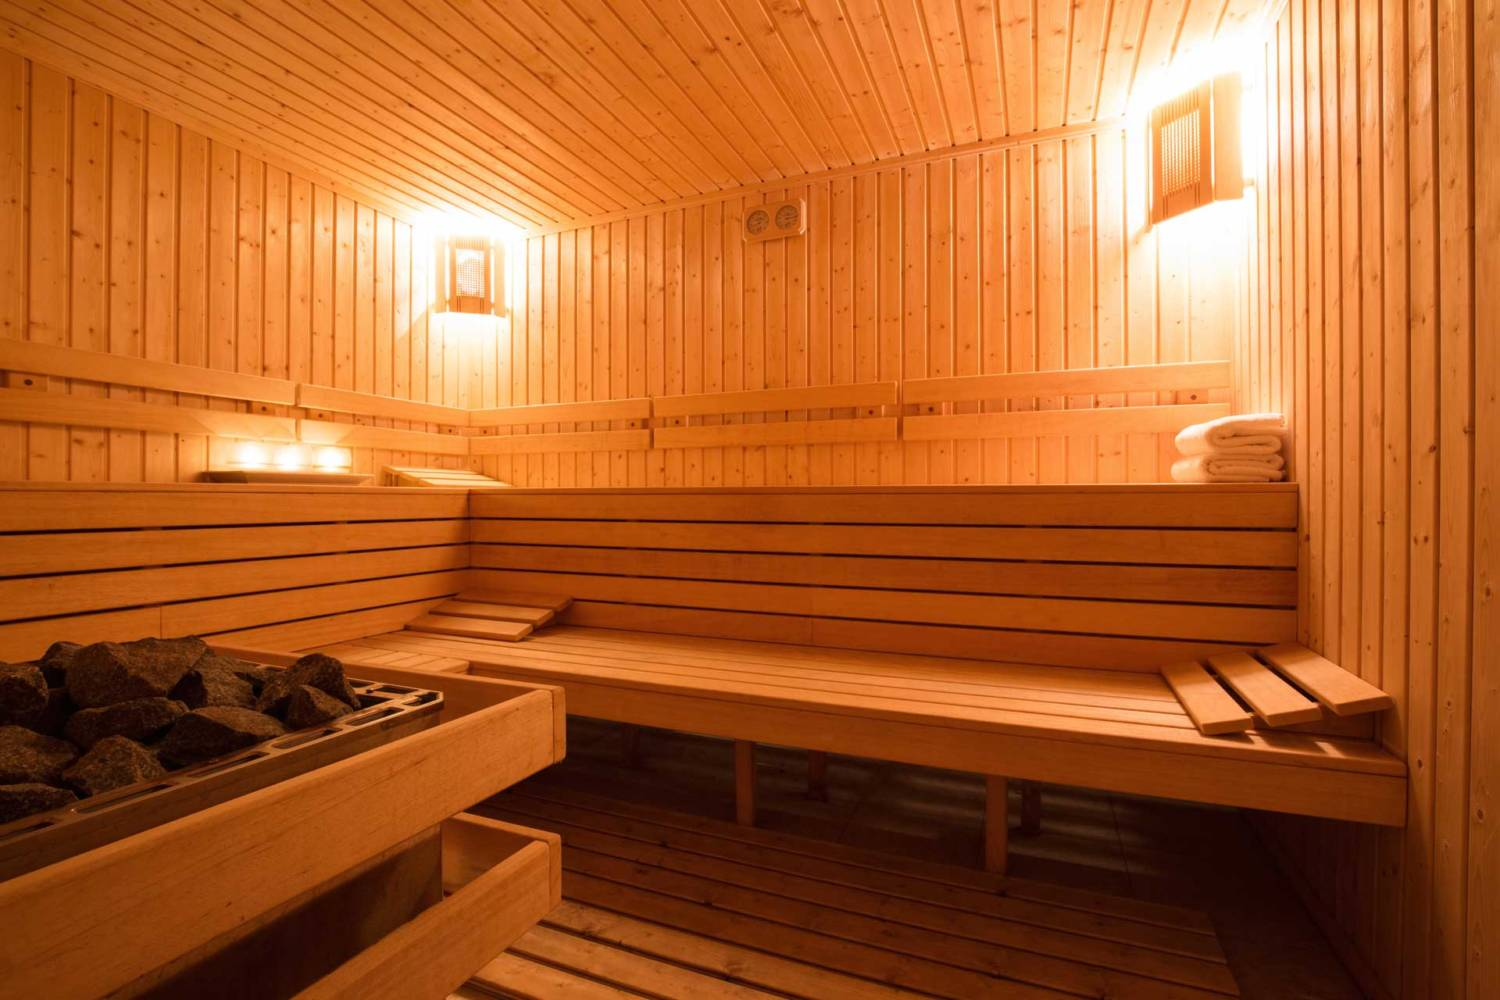 electrical wiring for saunas in leesburg sescos since 1963 rh sescos com Sauna Electric Furnace Gym & Sauna Room